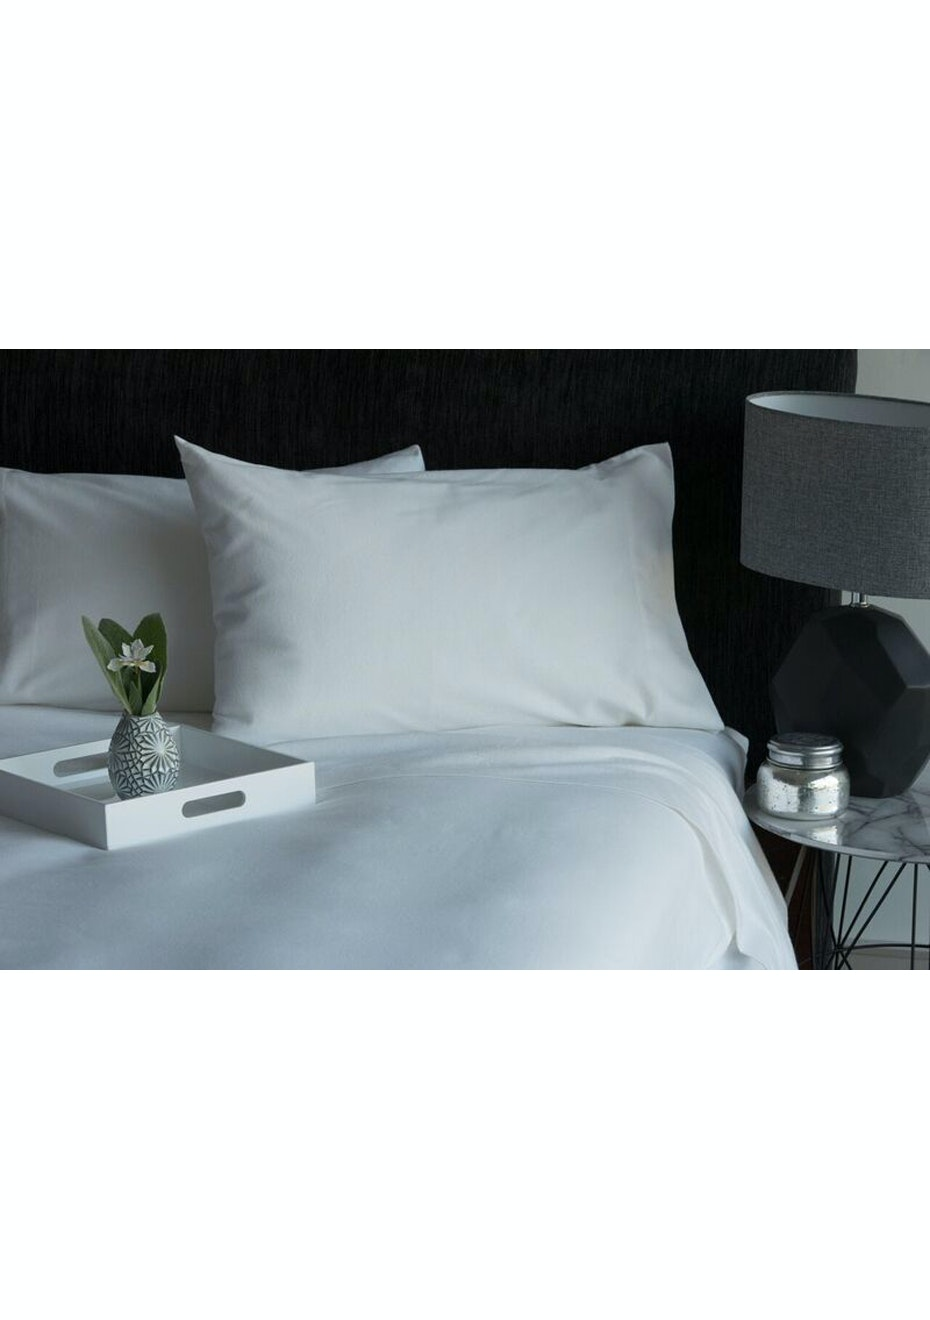 Conran Flannelette Sheet Set Double Bed  White